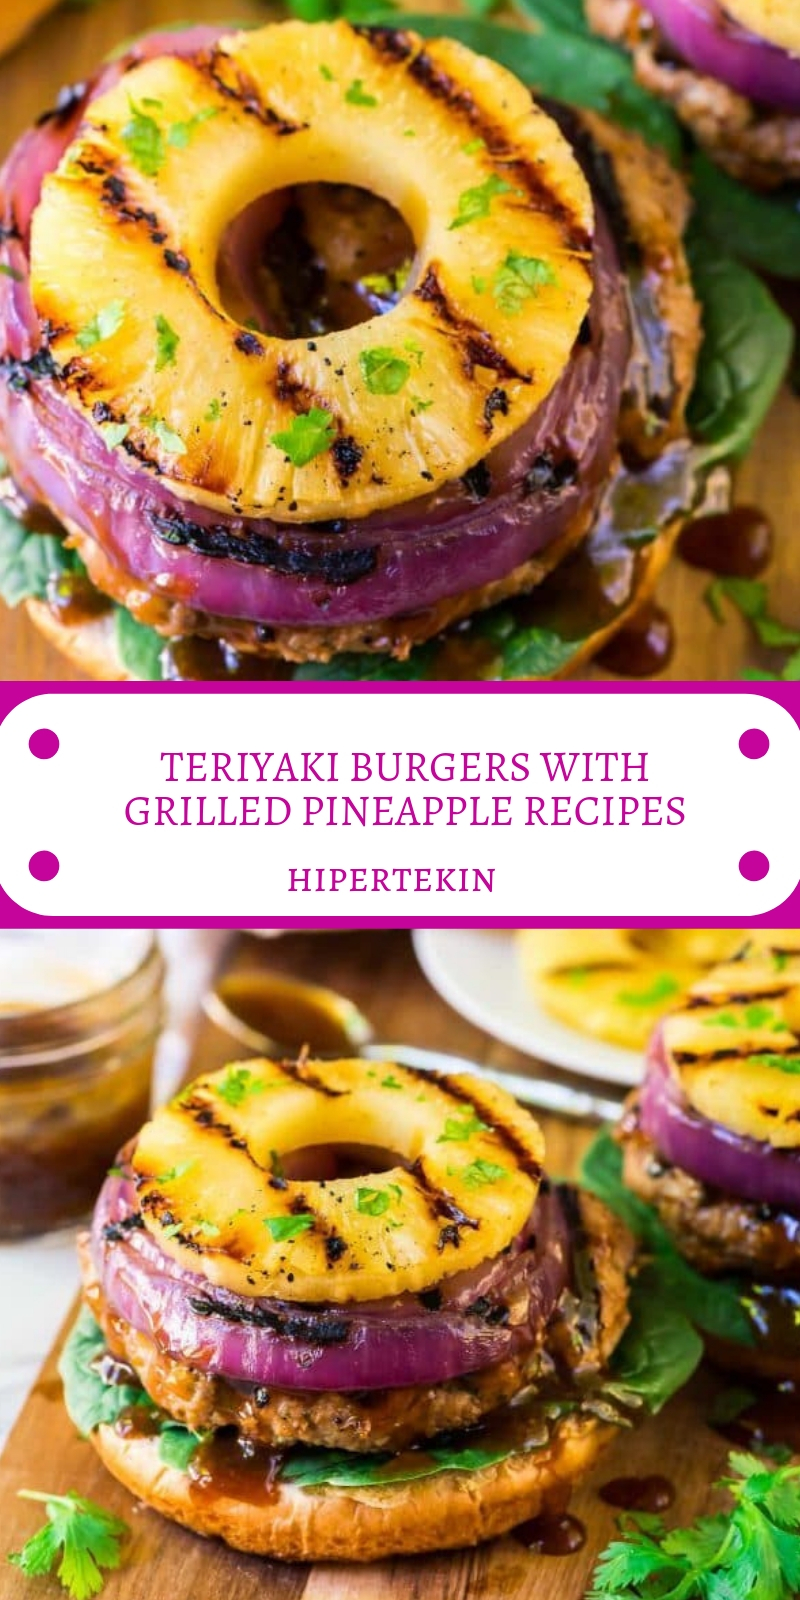 TERIYAKI BURGERS WITH GRILLED PINEAPPLE RECIPES